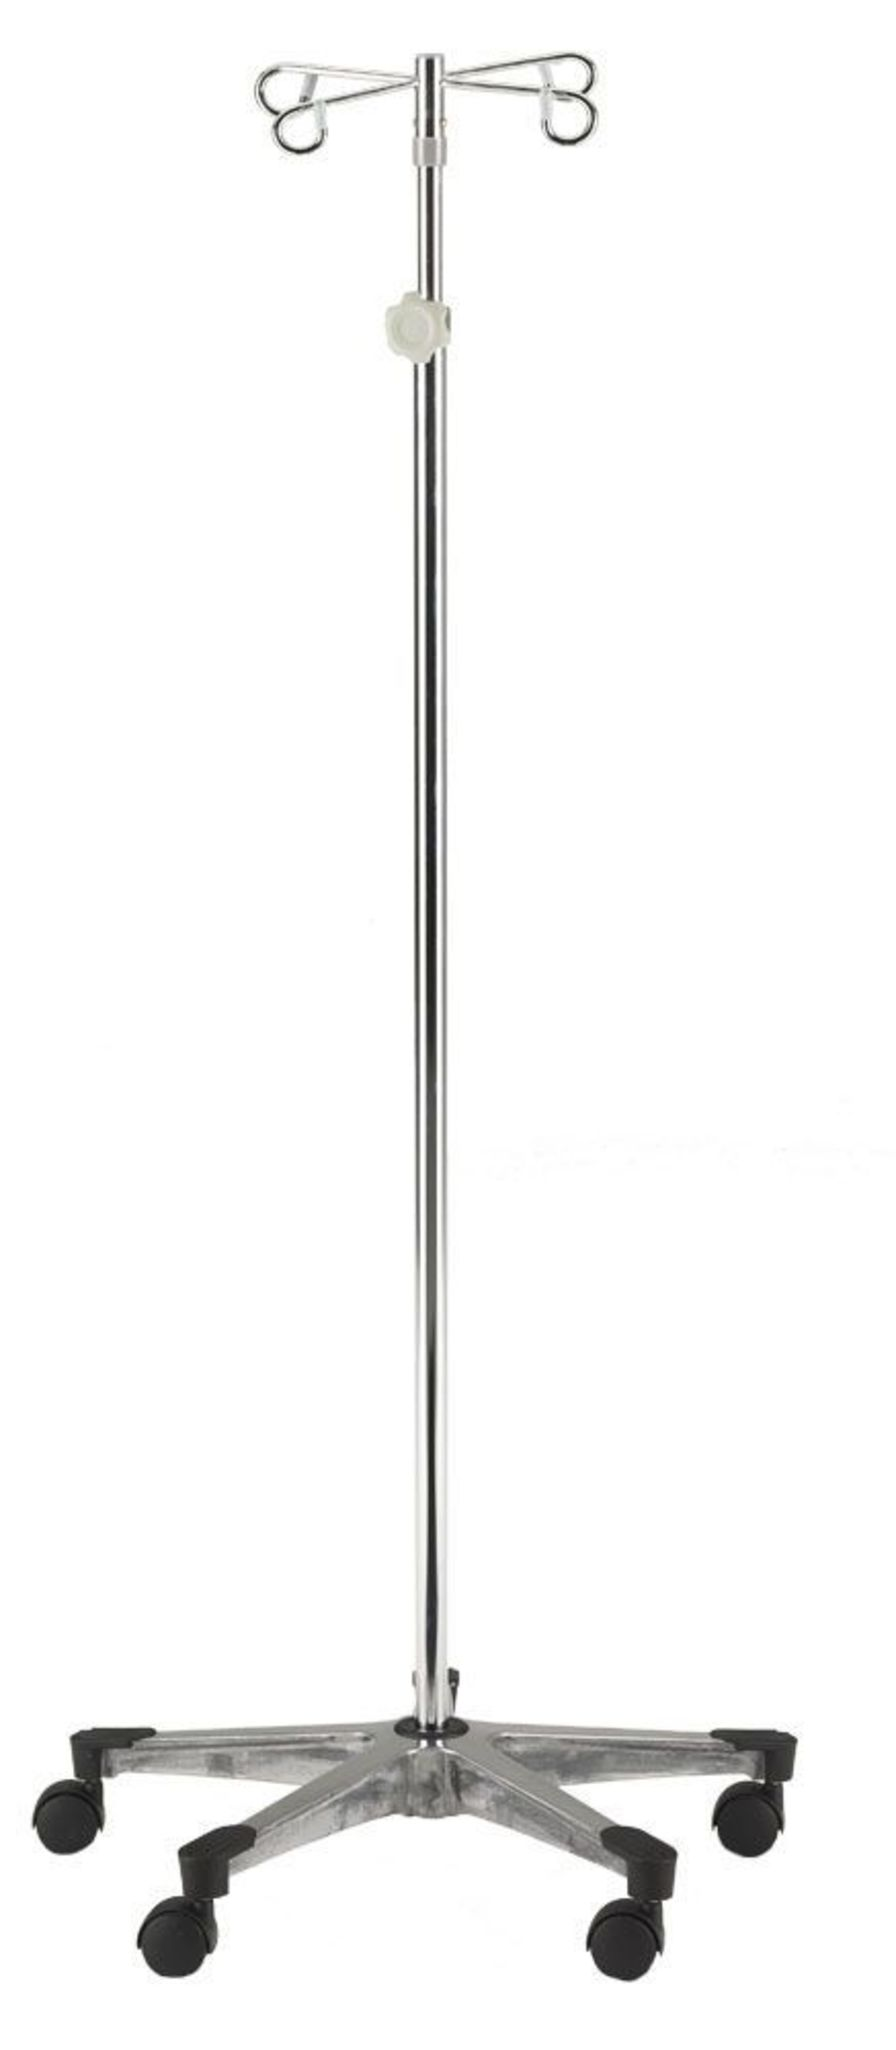 4-hook IV pole / telescopic / on casters 134-4 Intensa